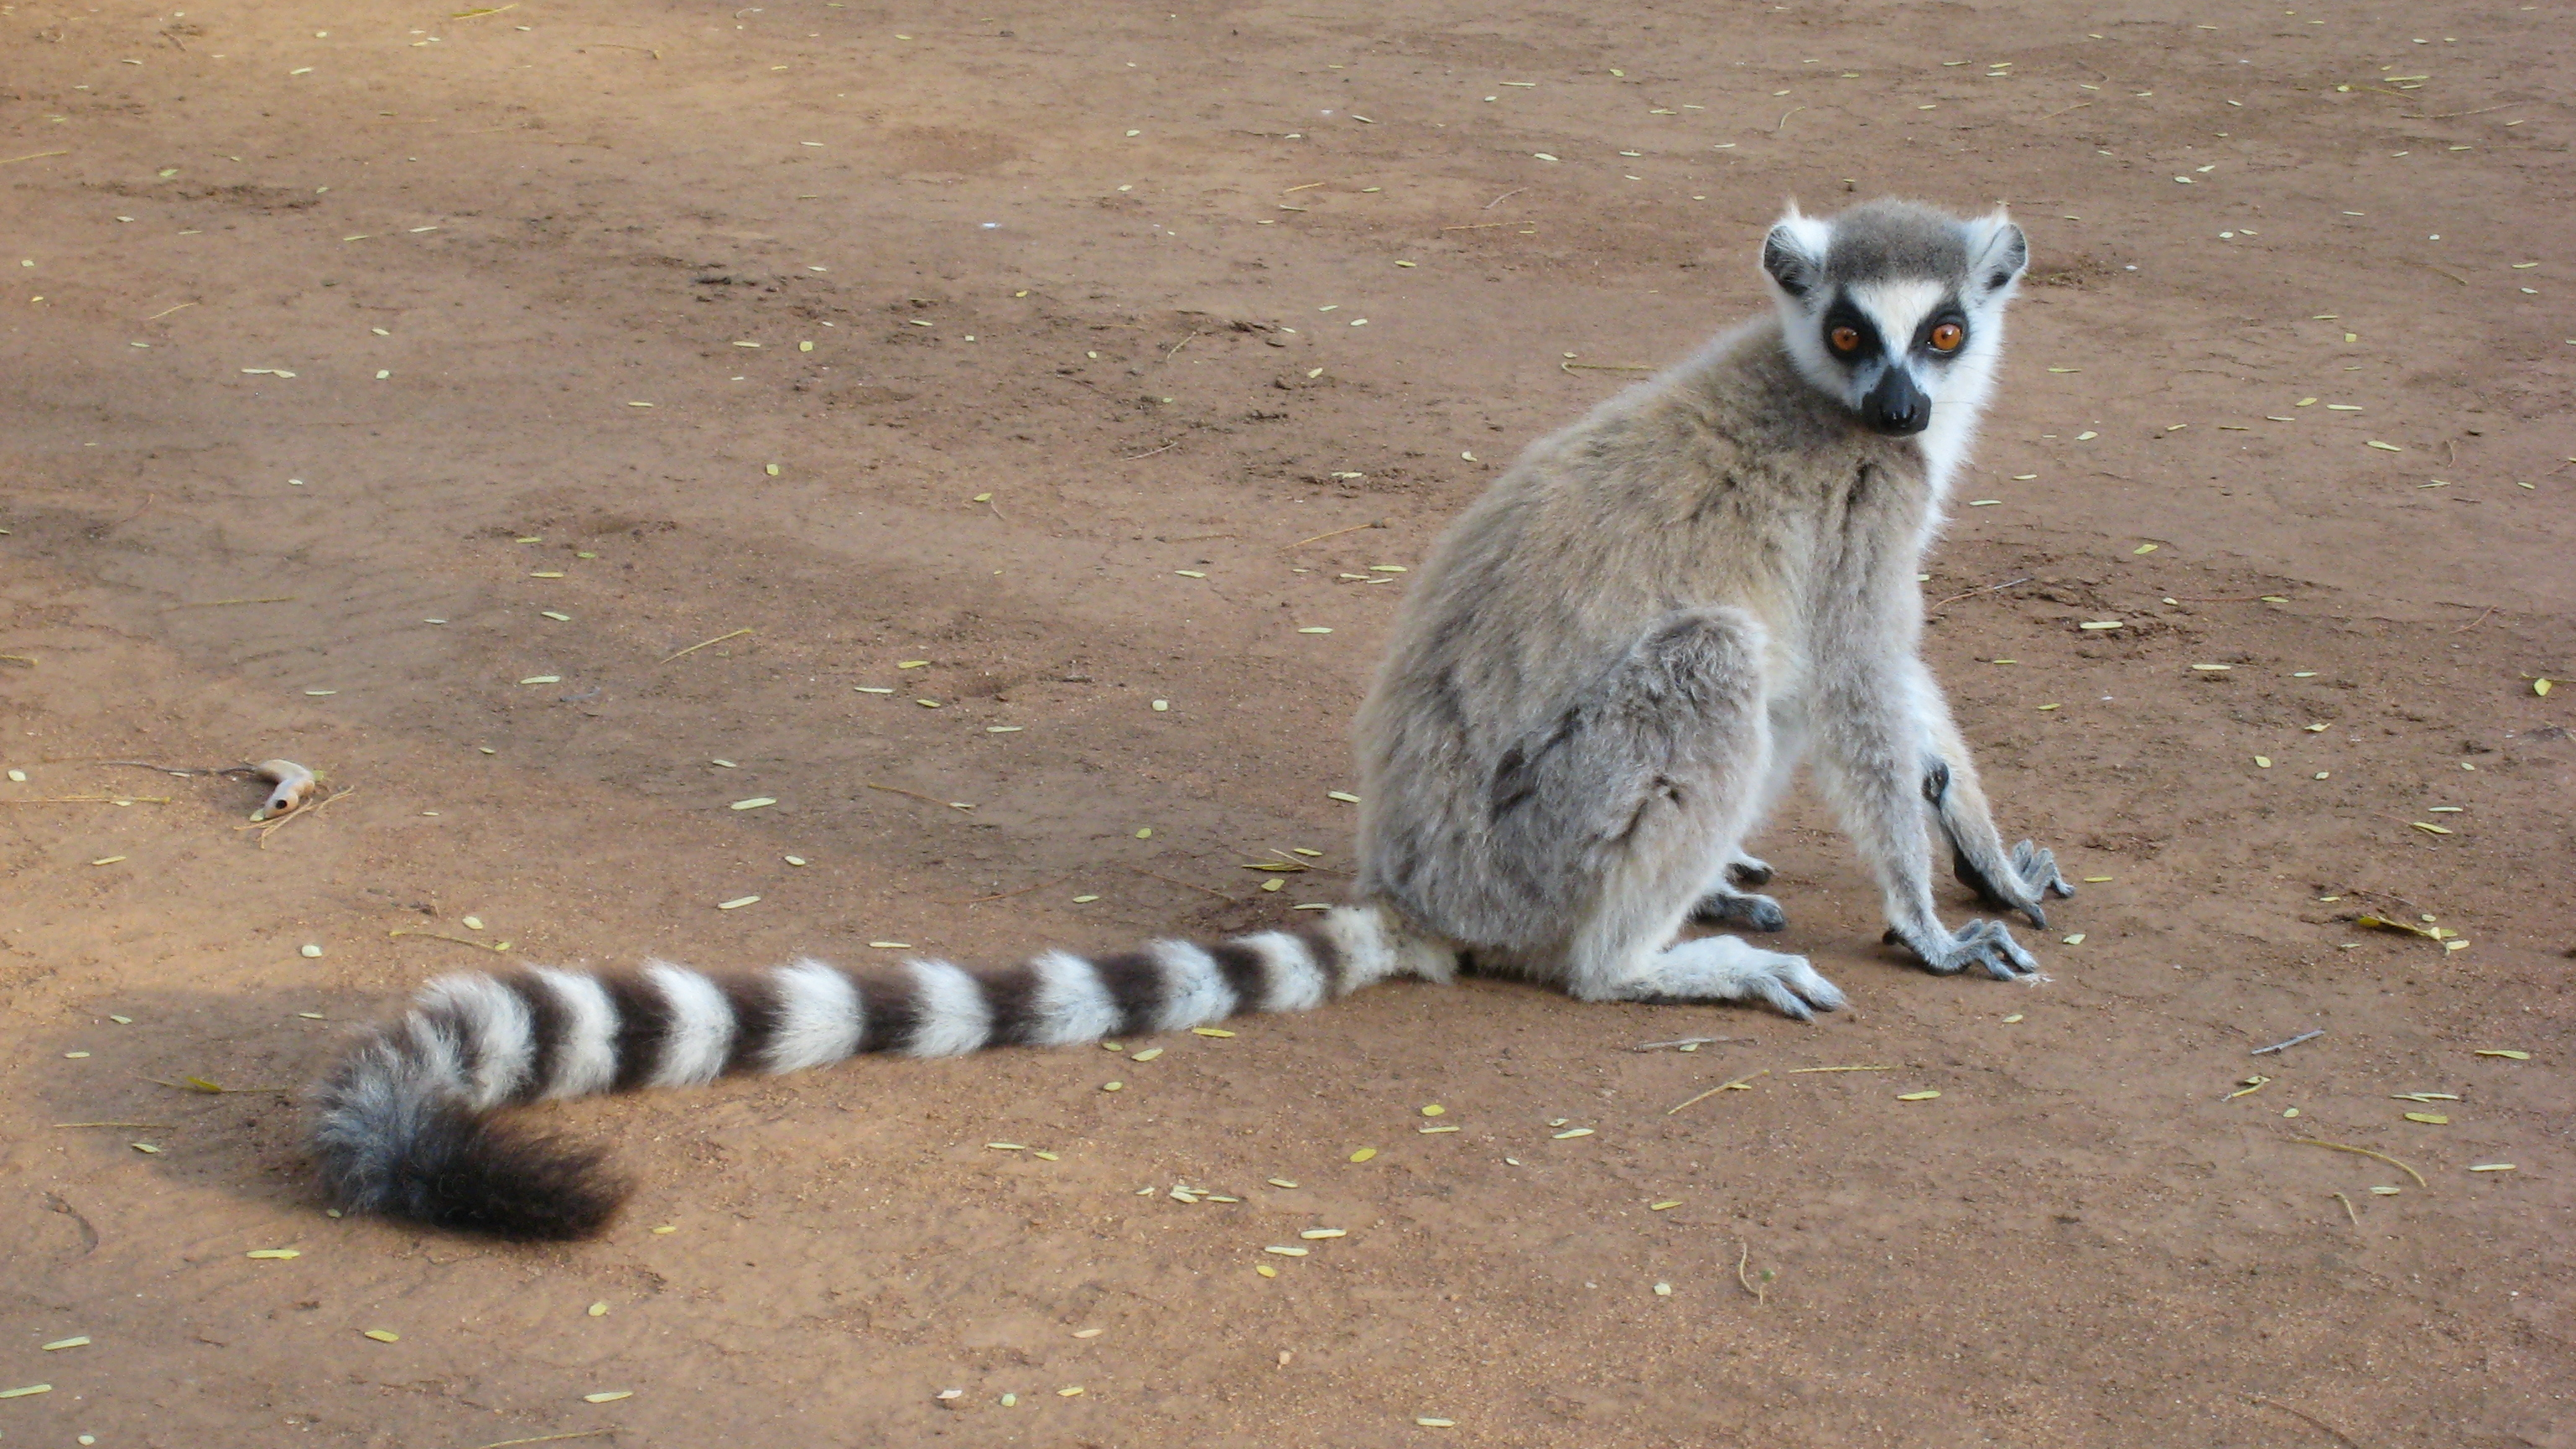 https://upload.wikimedia.org/wikipedia/commons/f/f5/Lemur_catta_001.jpg